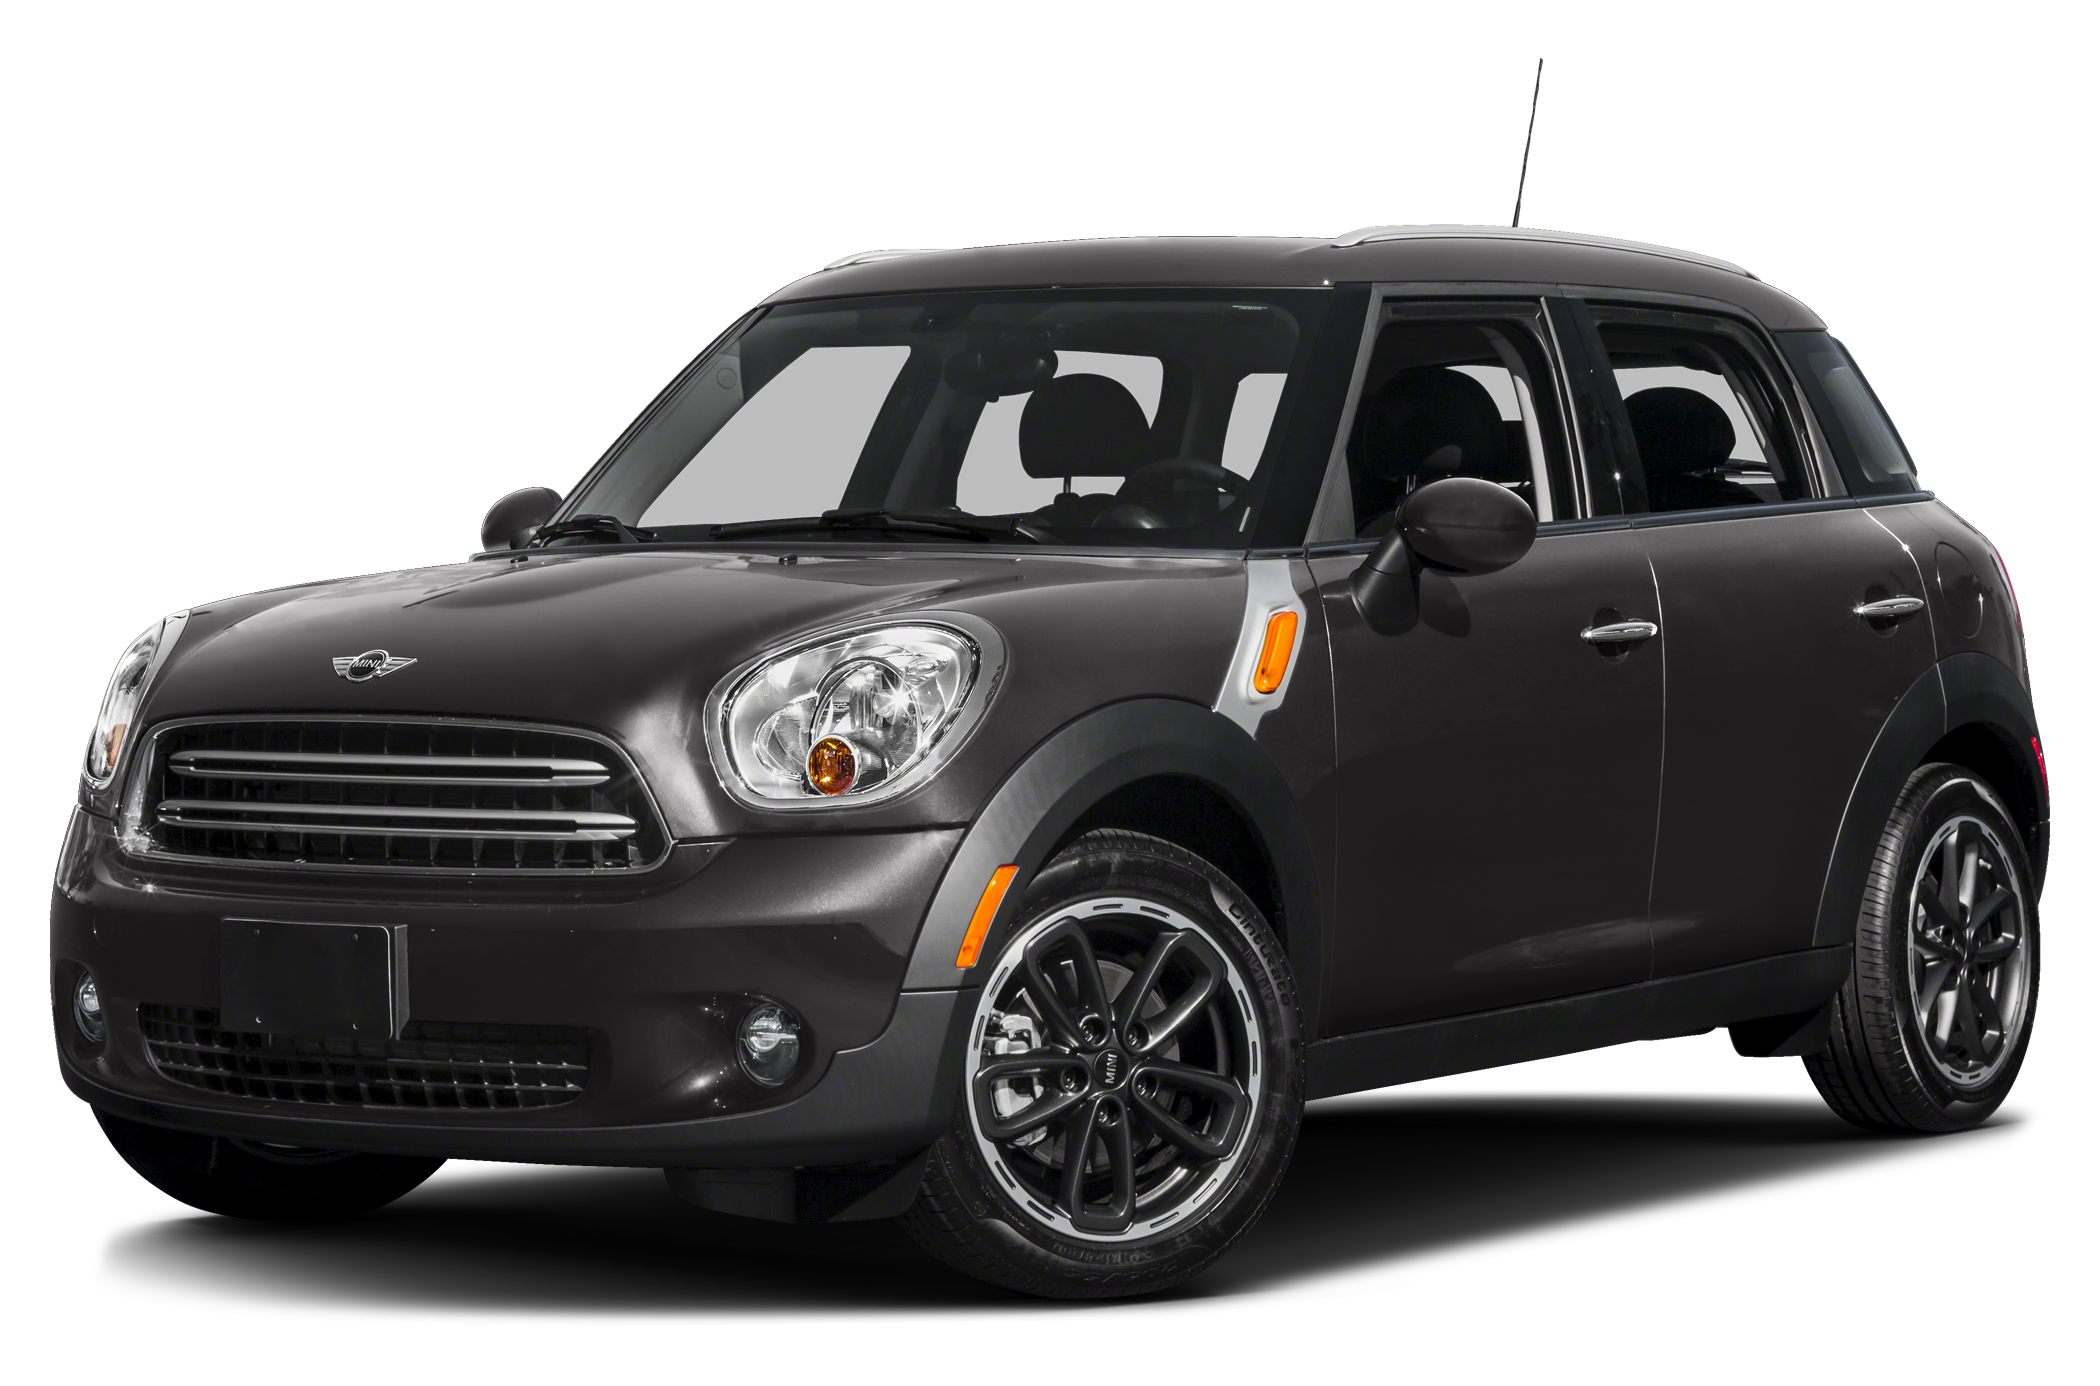 2015 MINI Cooper S Countryman Wow What a nice smaller SUV This great-looking and fun 2015 MINI C